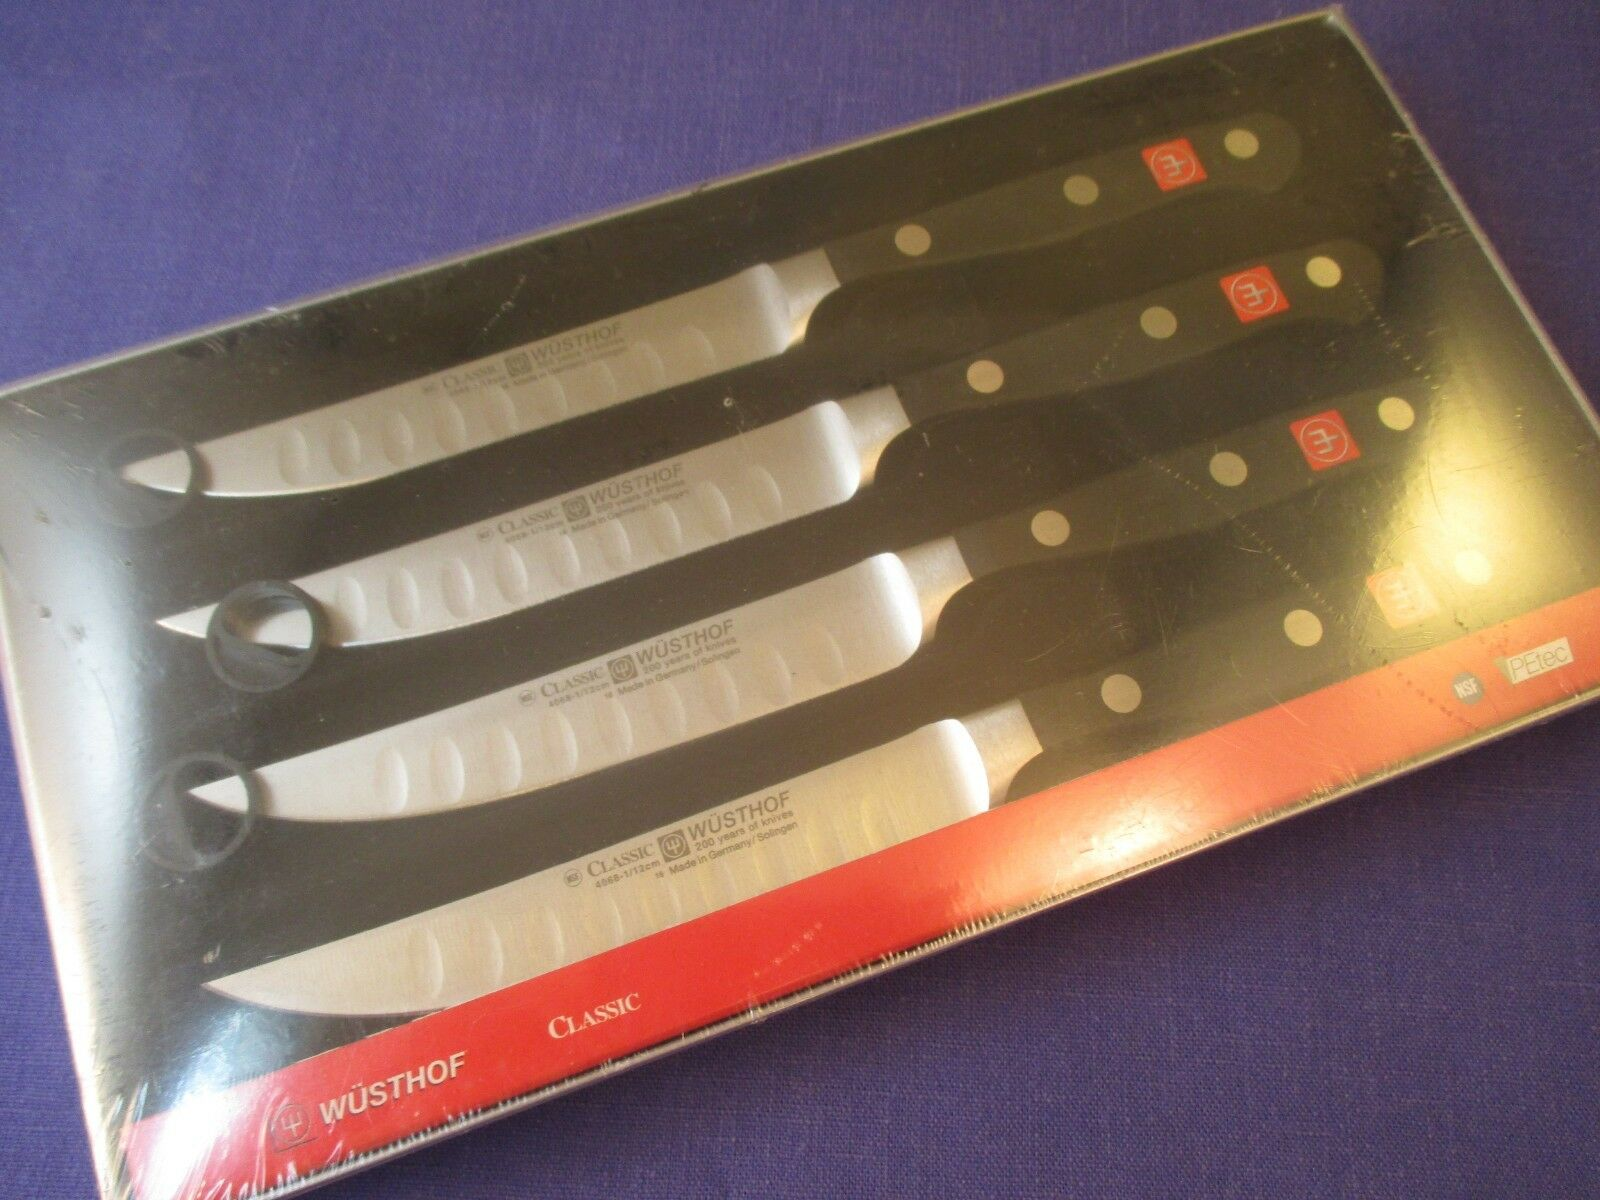 Wusthof Classic 4 piece Hollow Ground Steak Knife Set - 4 X 4068-1 12, NIB